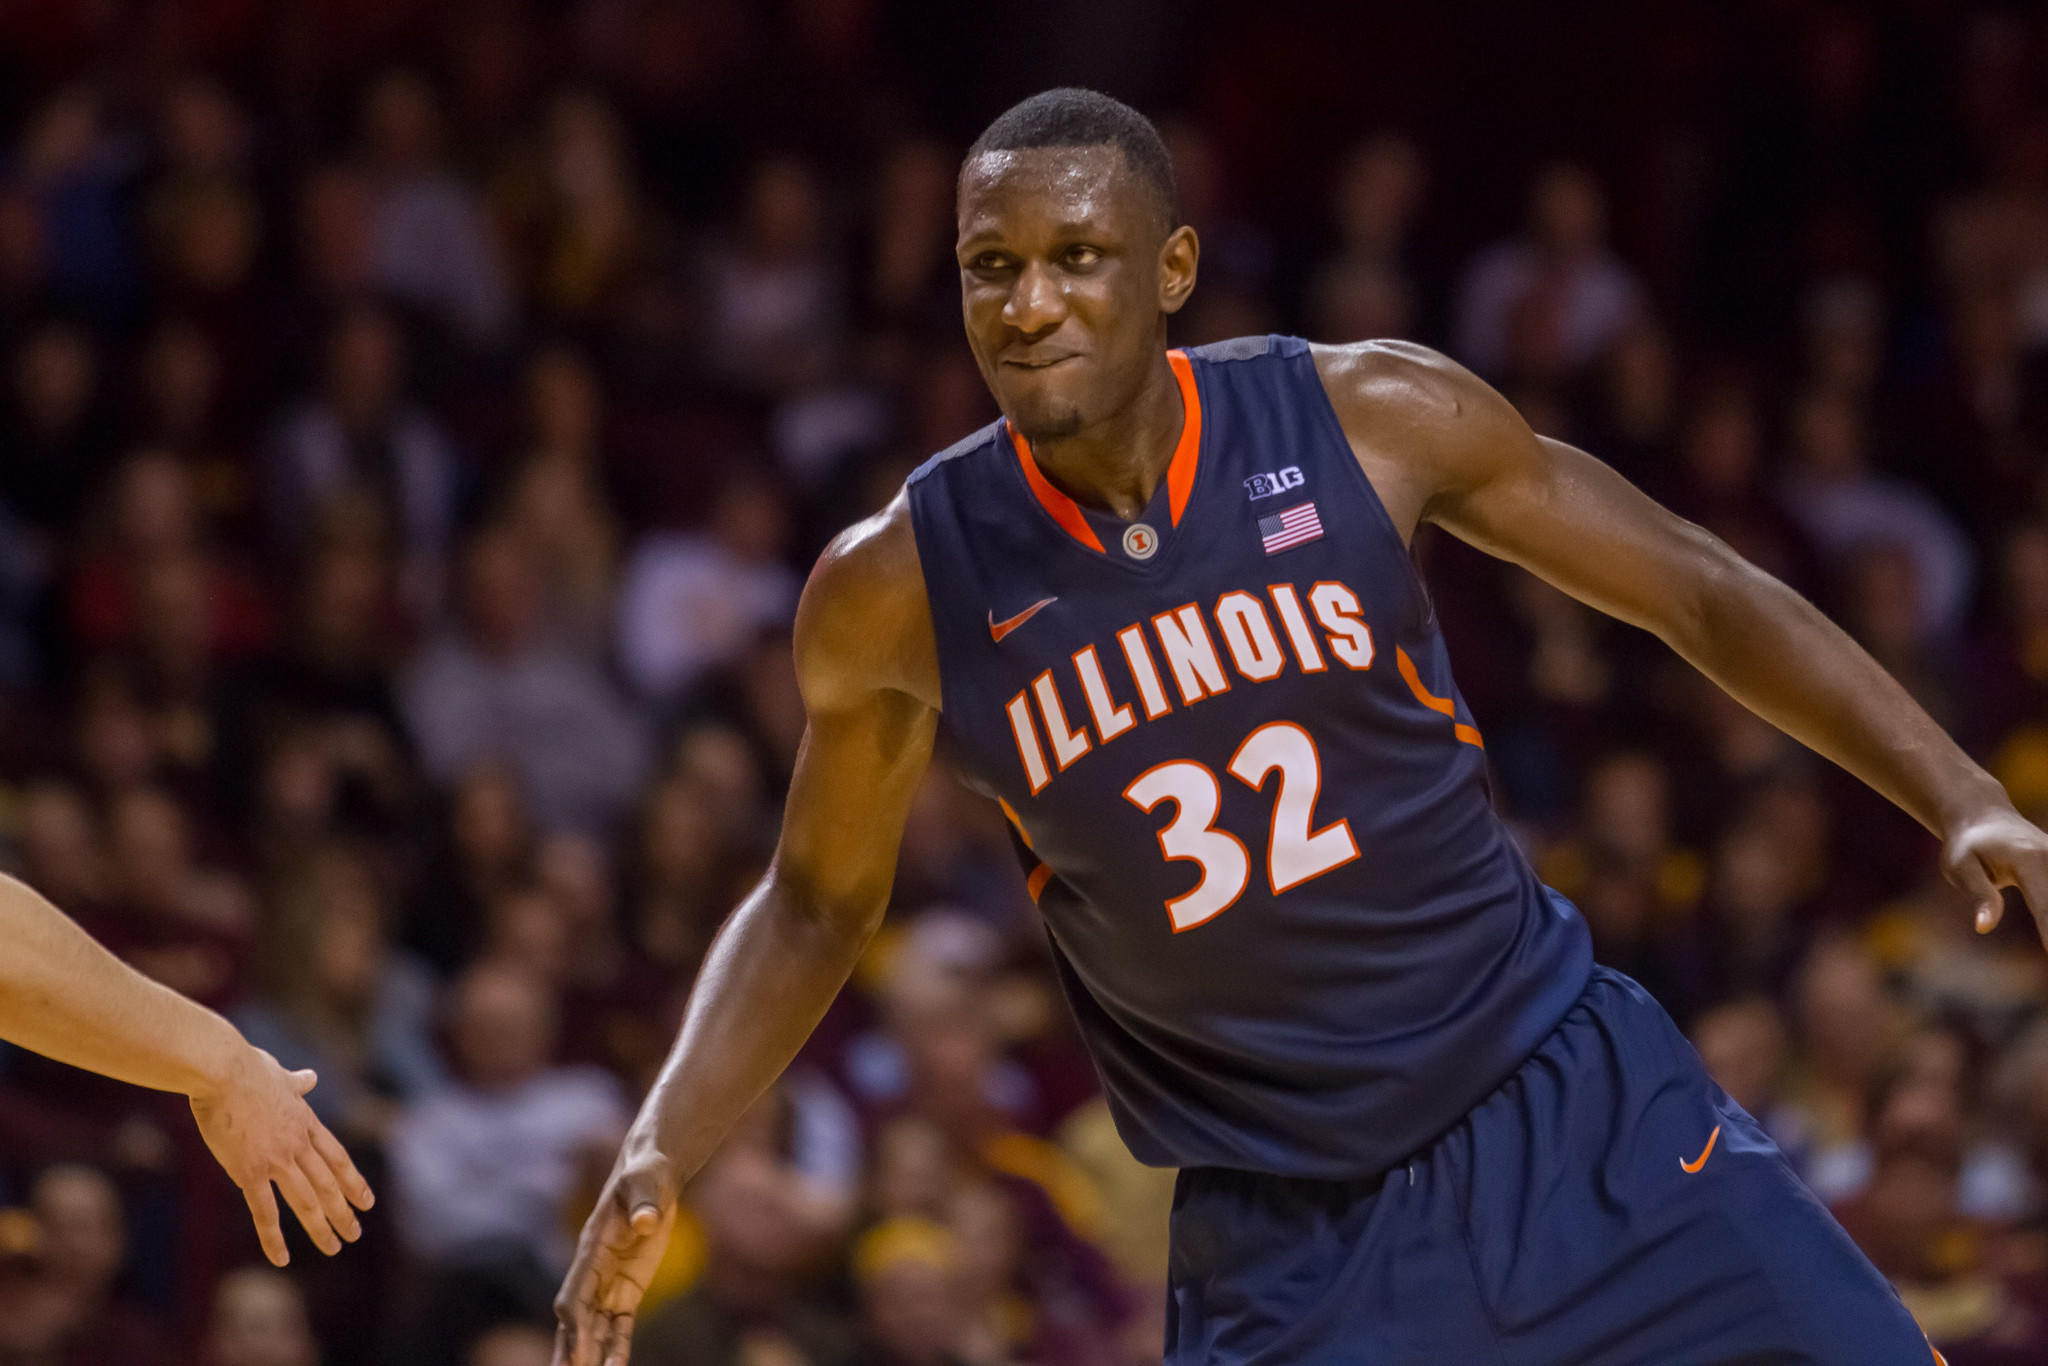 Illinois Fighting Illini forward Nnanna Egwu (32) celebrates after a basket in the second half against the Minnesota Gophers at Williams Arena. Illinois wins 62-49.